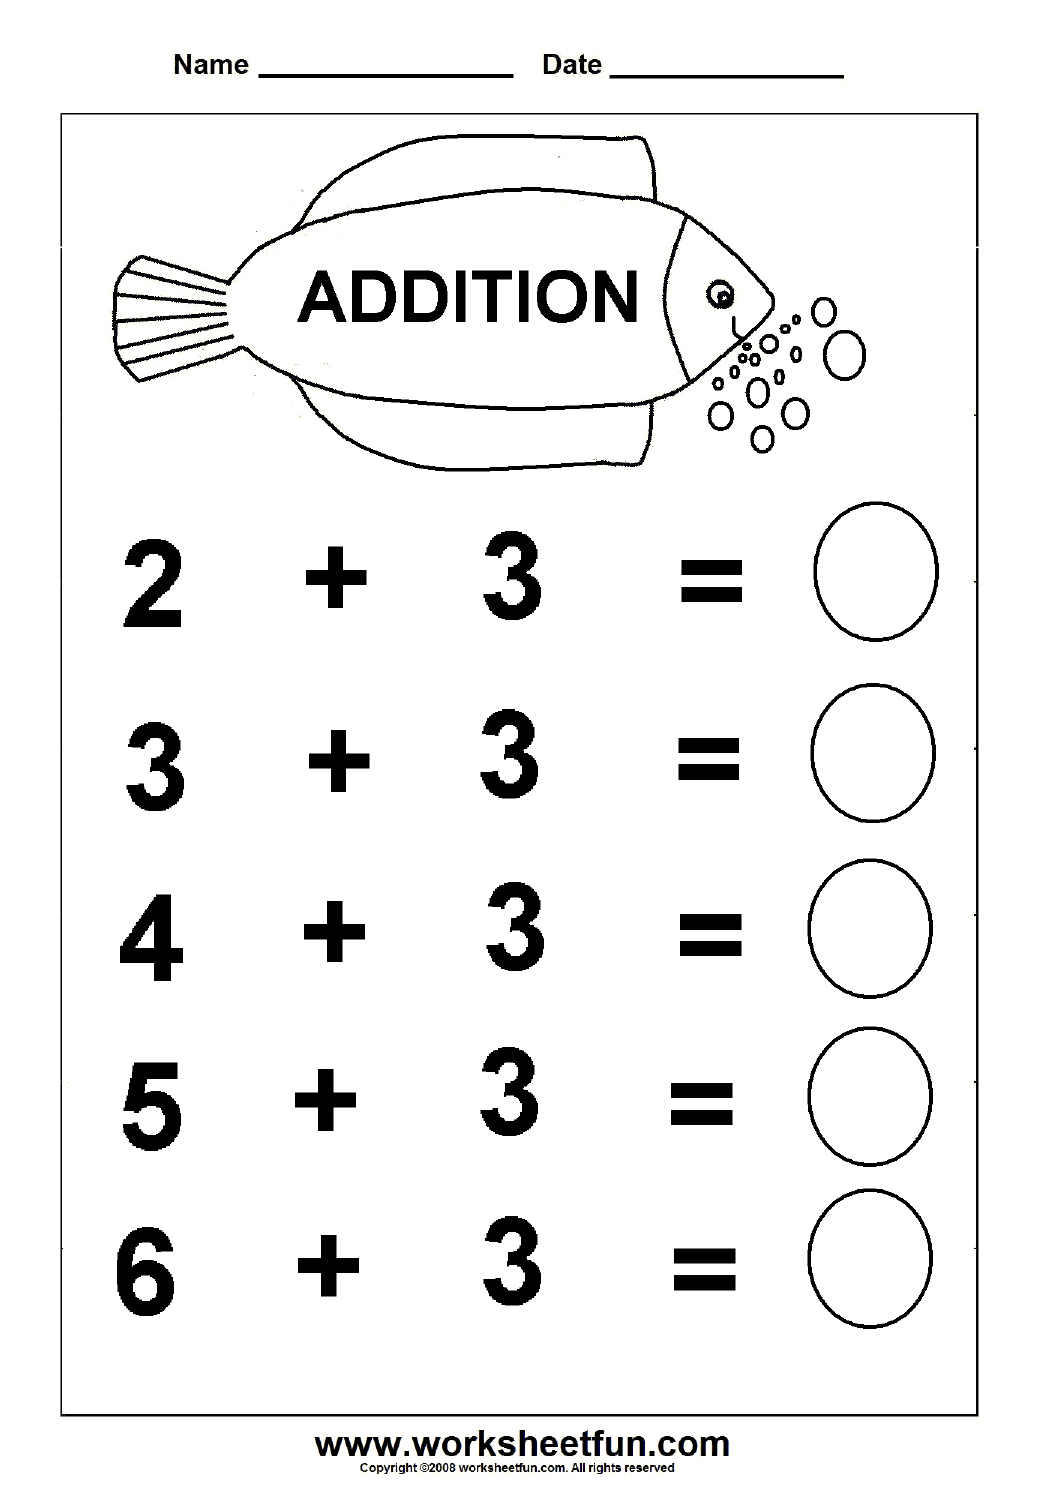 Worksheets Kindergarten Math Worksheets Addition And Subtraction worksheet 604780 math worksheets for kindergarten printable free addition 1000 images printable